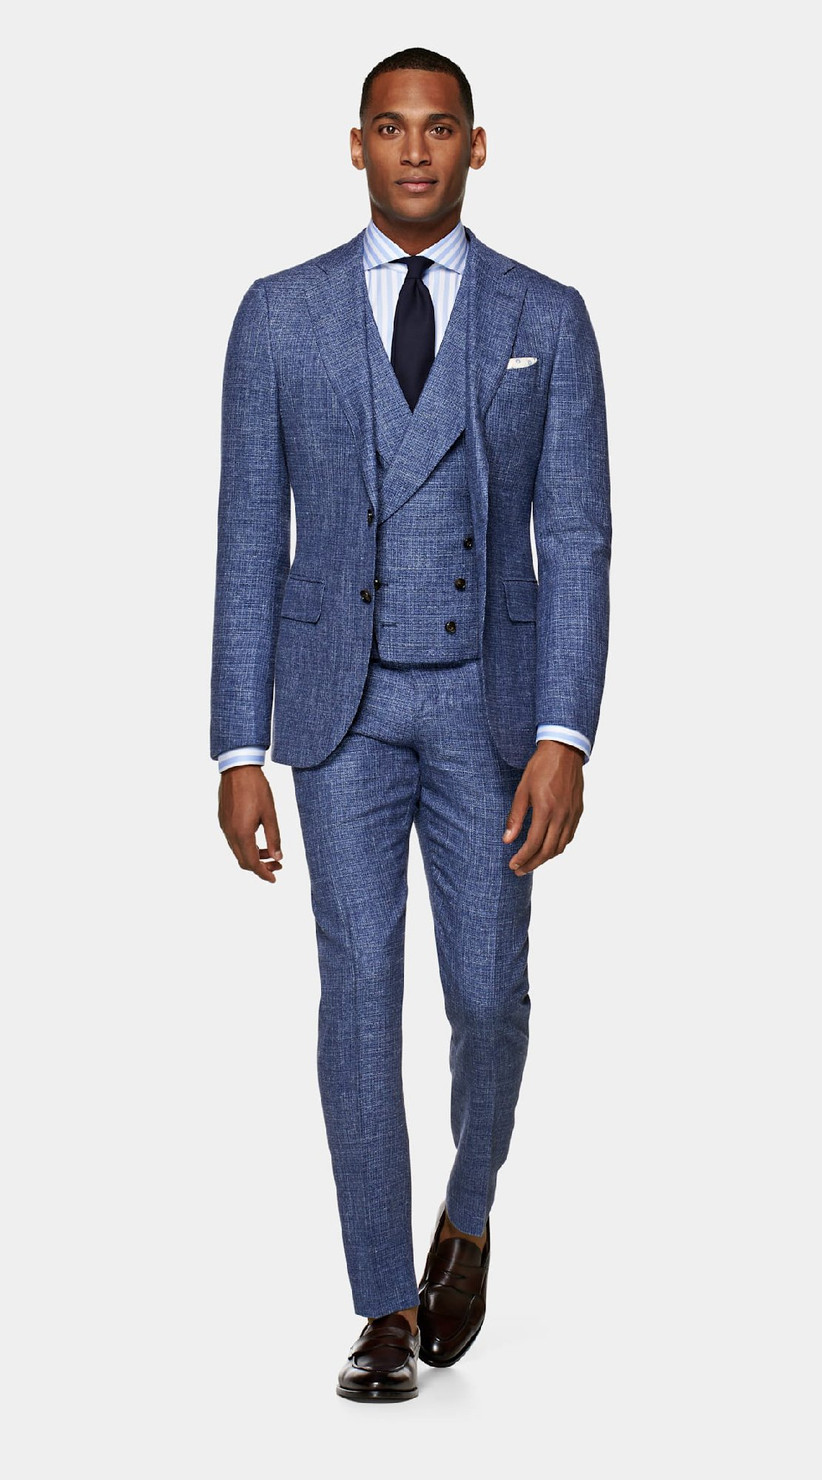 Wool, silk, and linen blend three-piece suit in mid-blue color